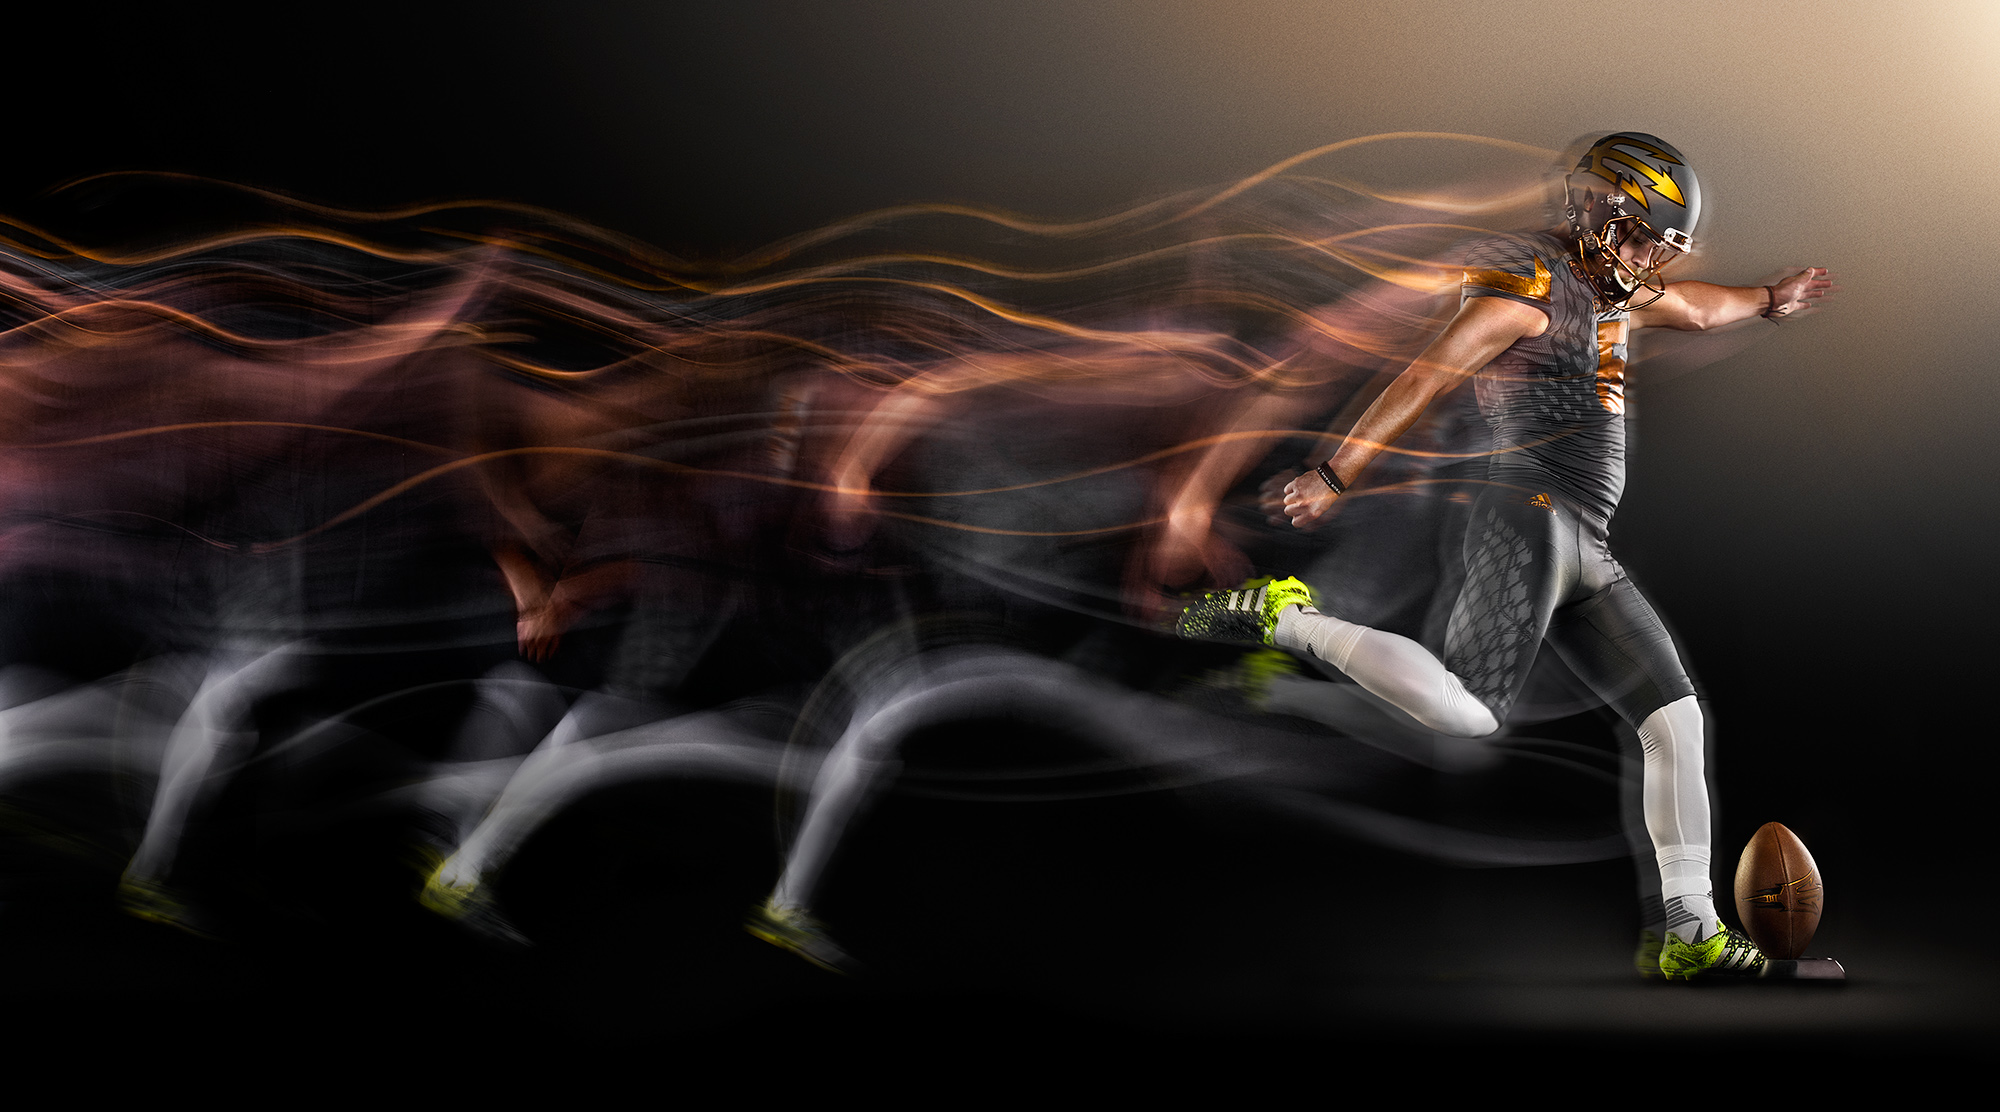 CGI Photography of Sports by Blair Bunting